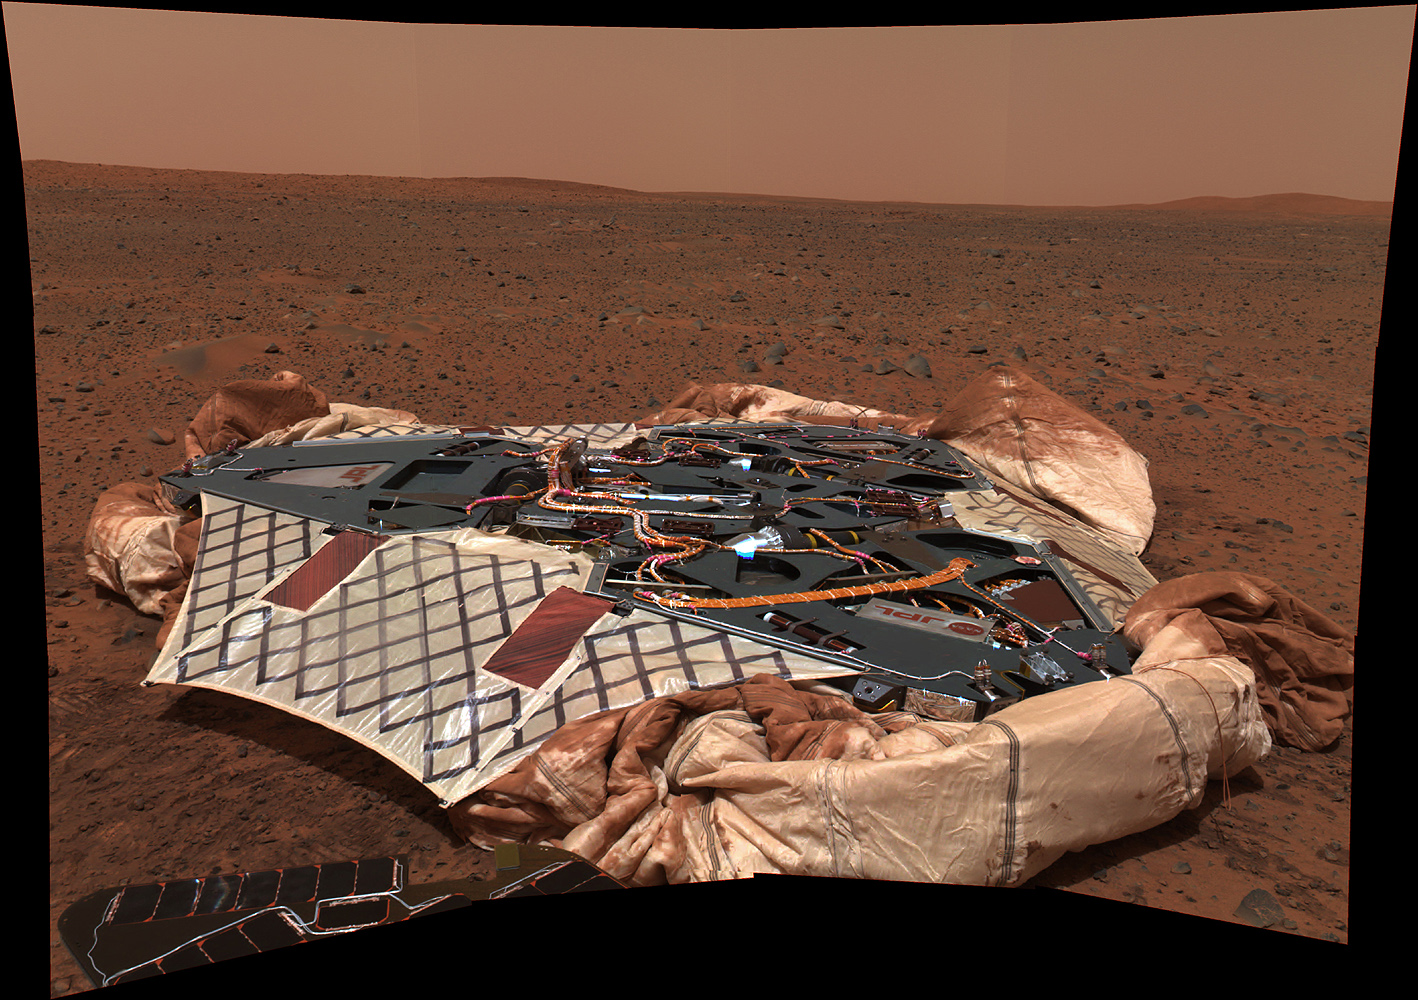 new mars exploration rover - photo #27